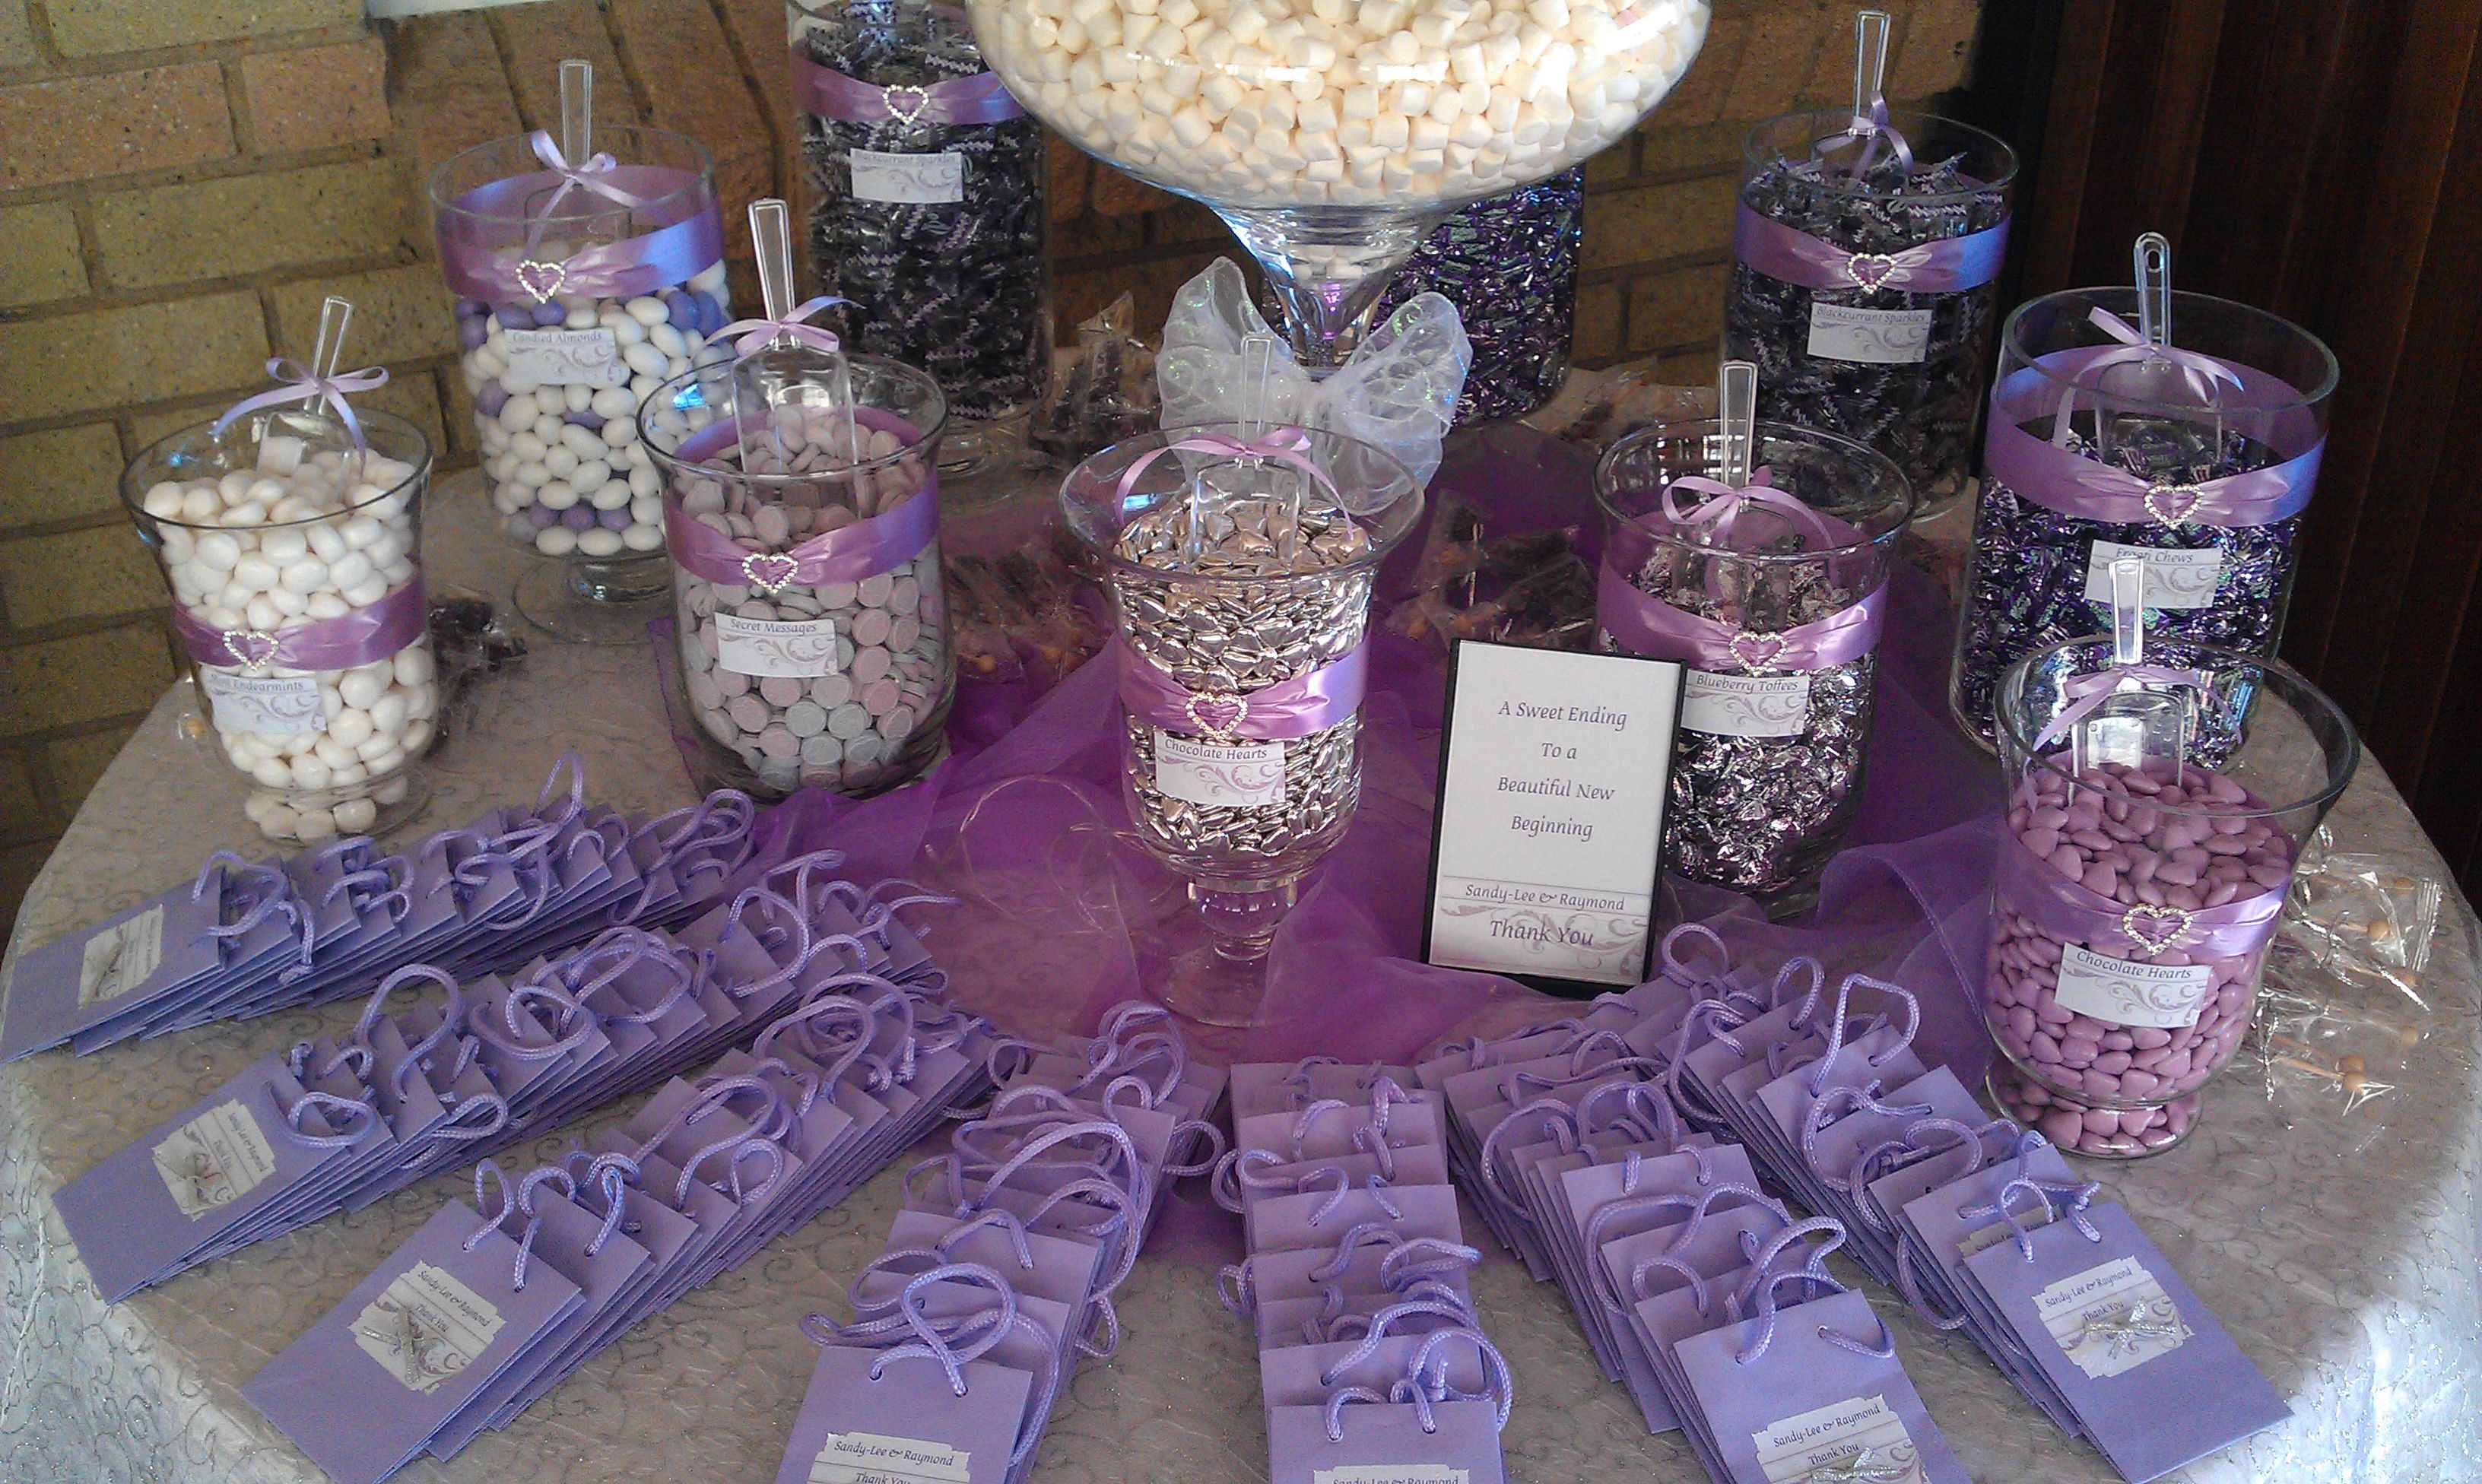 Sweet amp sparkly wedding candy buffet pictures to pin on pinterest - Candy Table